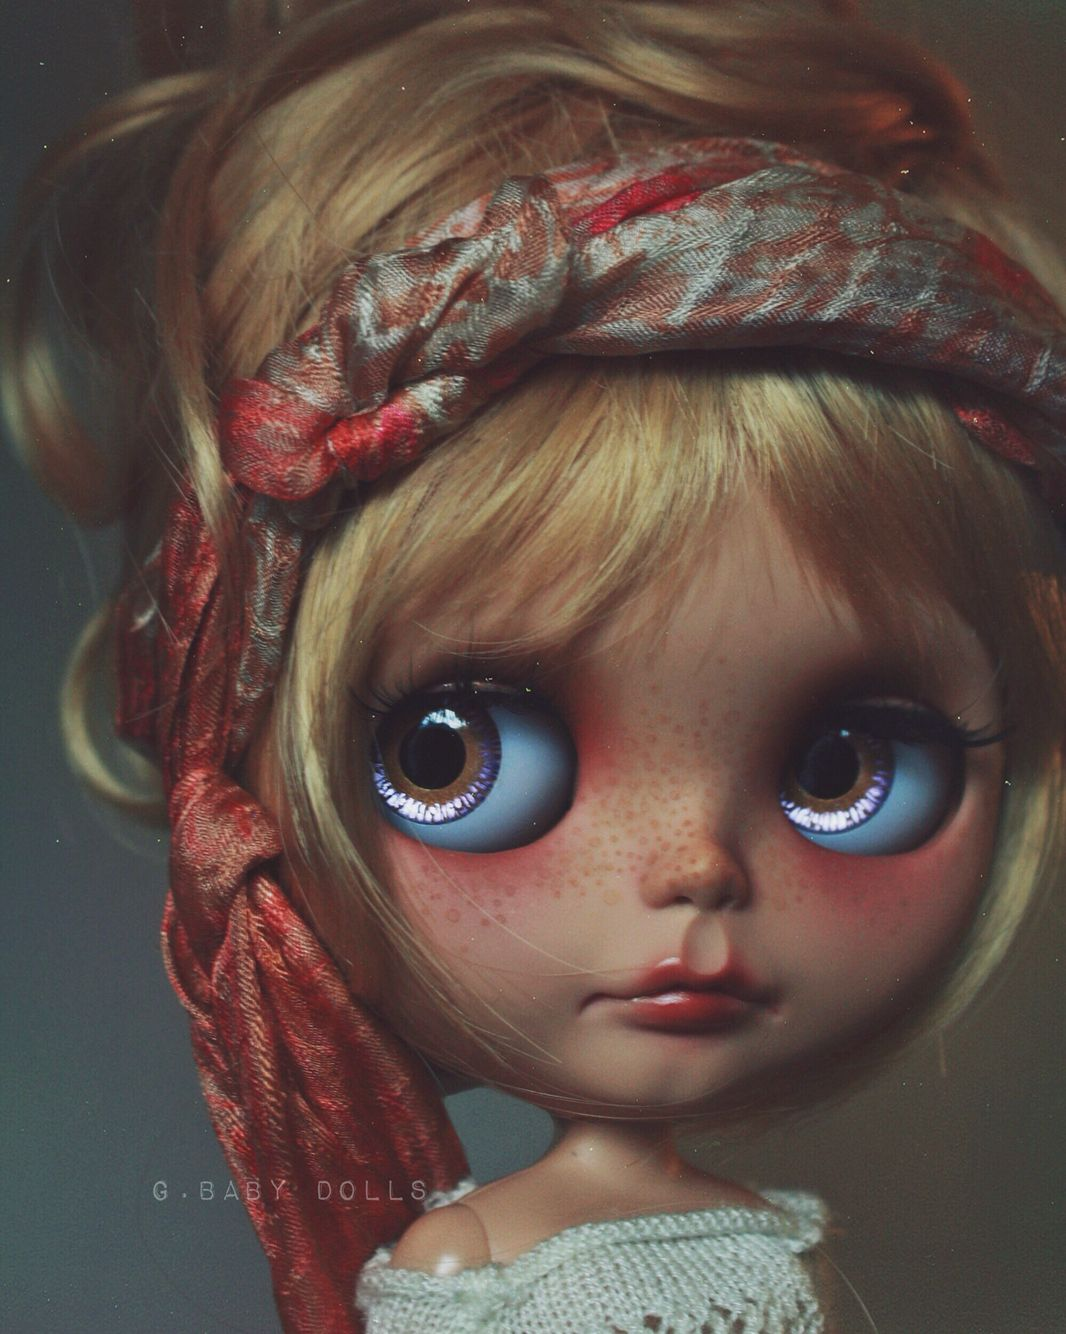 Hairstyle Updo Vintage Blonde Bangs Kawaii Makeup Mua Fashion Style Kawaii Makeup Cute Beauty Blythe Dolls